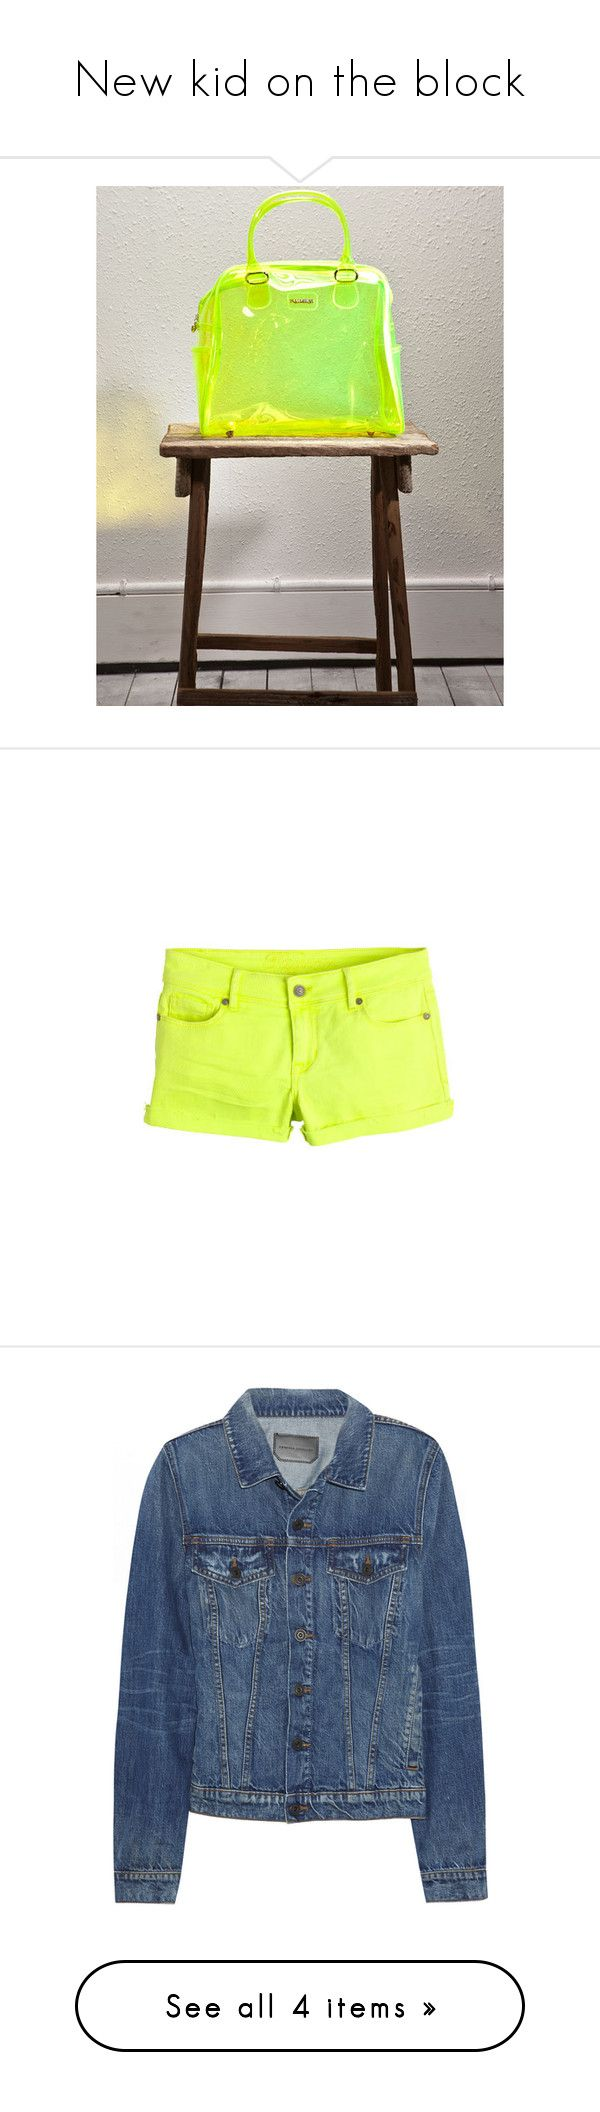 """New kid on the block"" by clairehull ❤ liked on Polyvore featuring shorts, bottoms, pants, yellow, view all shorts, yellow shorts, yellow short shorts, stretch shorts, cuffed shorts and neon shorts"